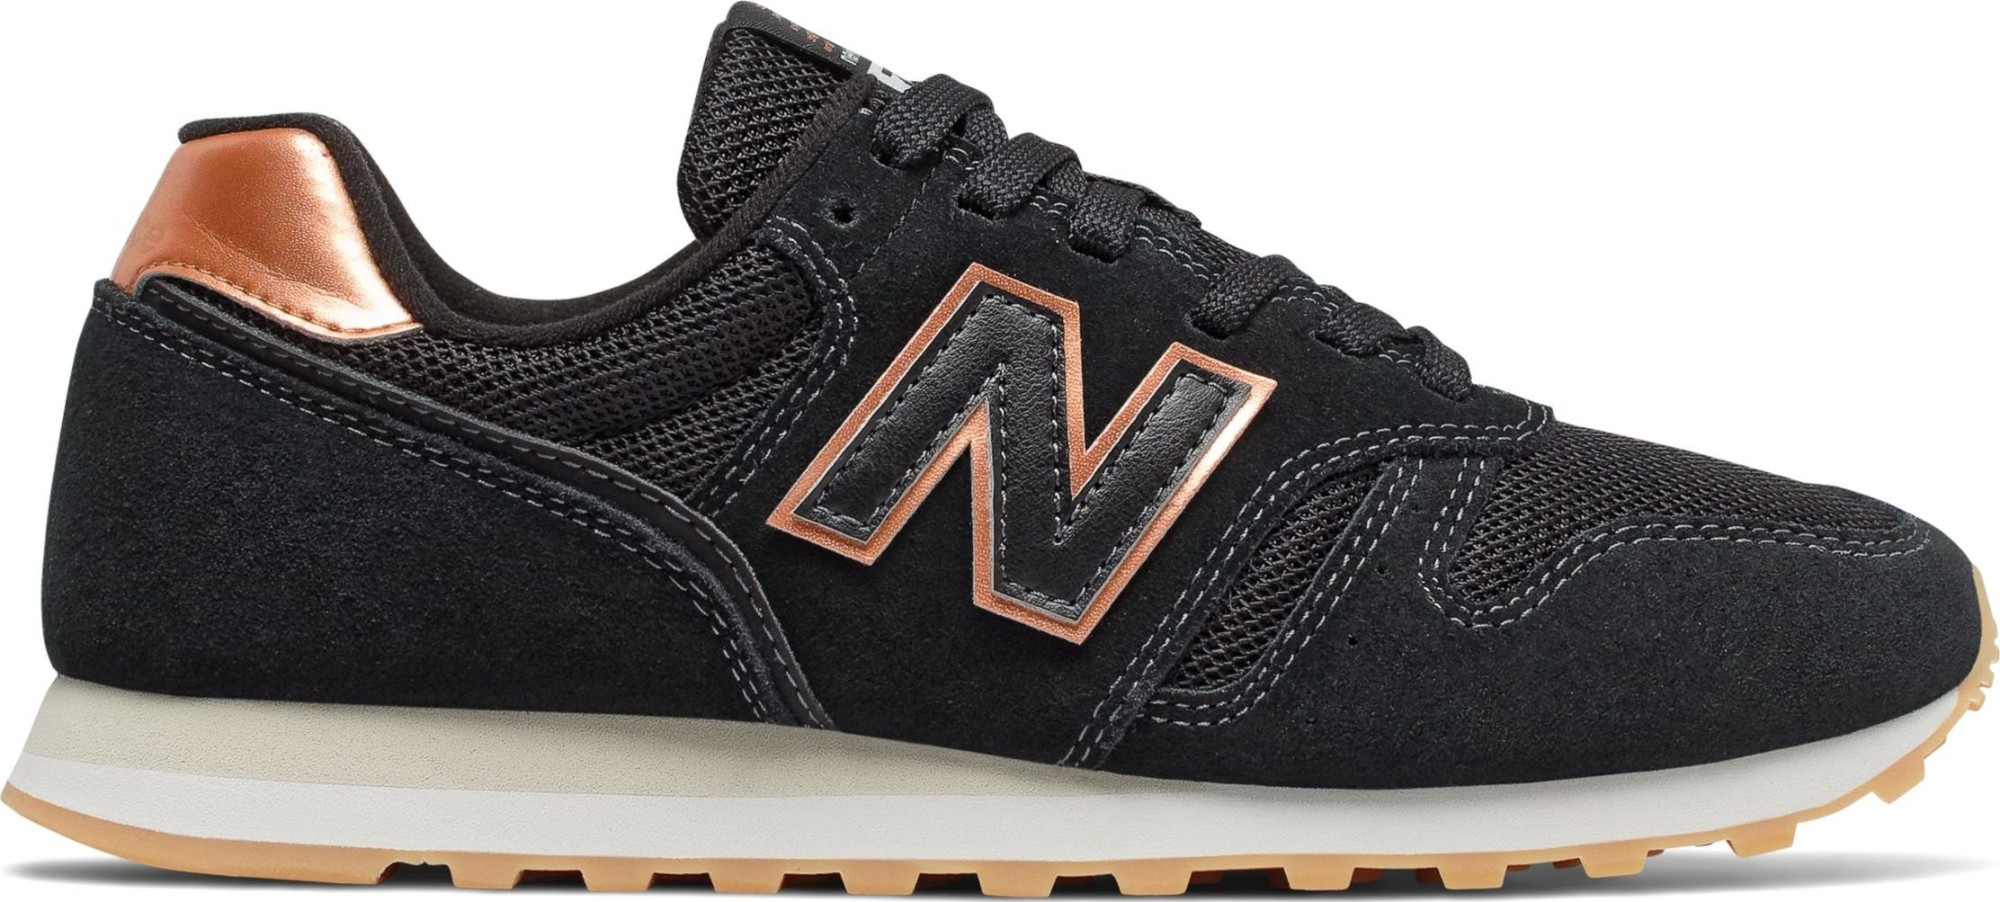 New Balance WL373 Black/Gold 37,5